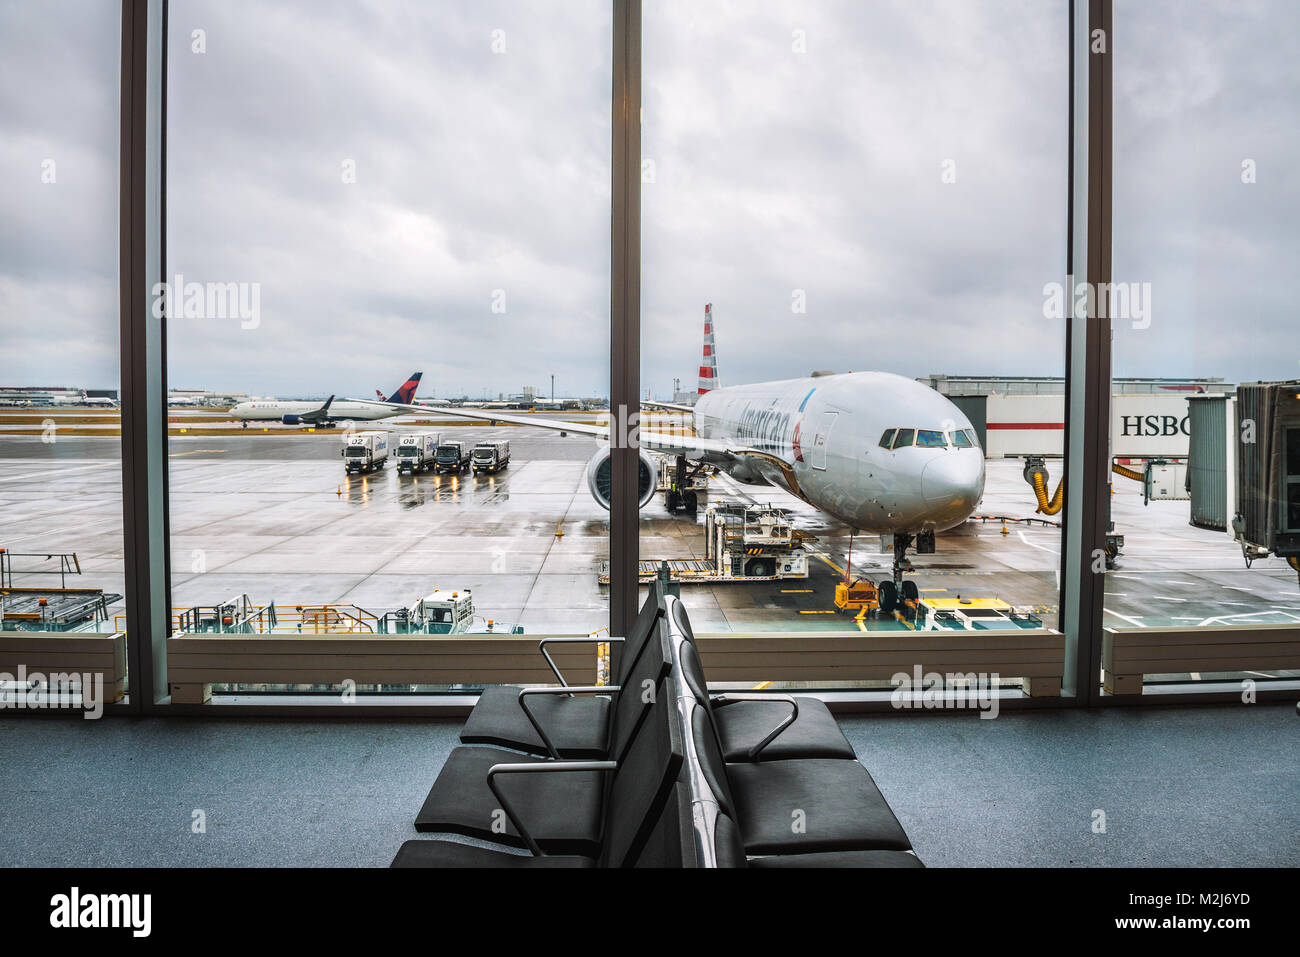 Airplane of American Airlines serviced at the London Heathrow airport - Stock Image